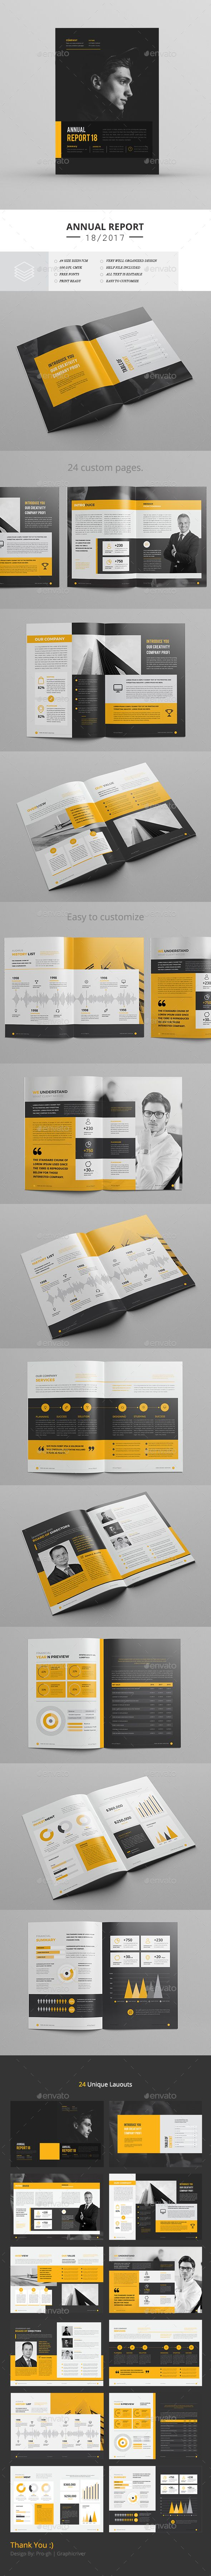 Annual Report - #Corporate #Brochures Download here: https://graphicriver.net/item/annual-report/20040033?ref=alena994